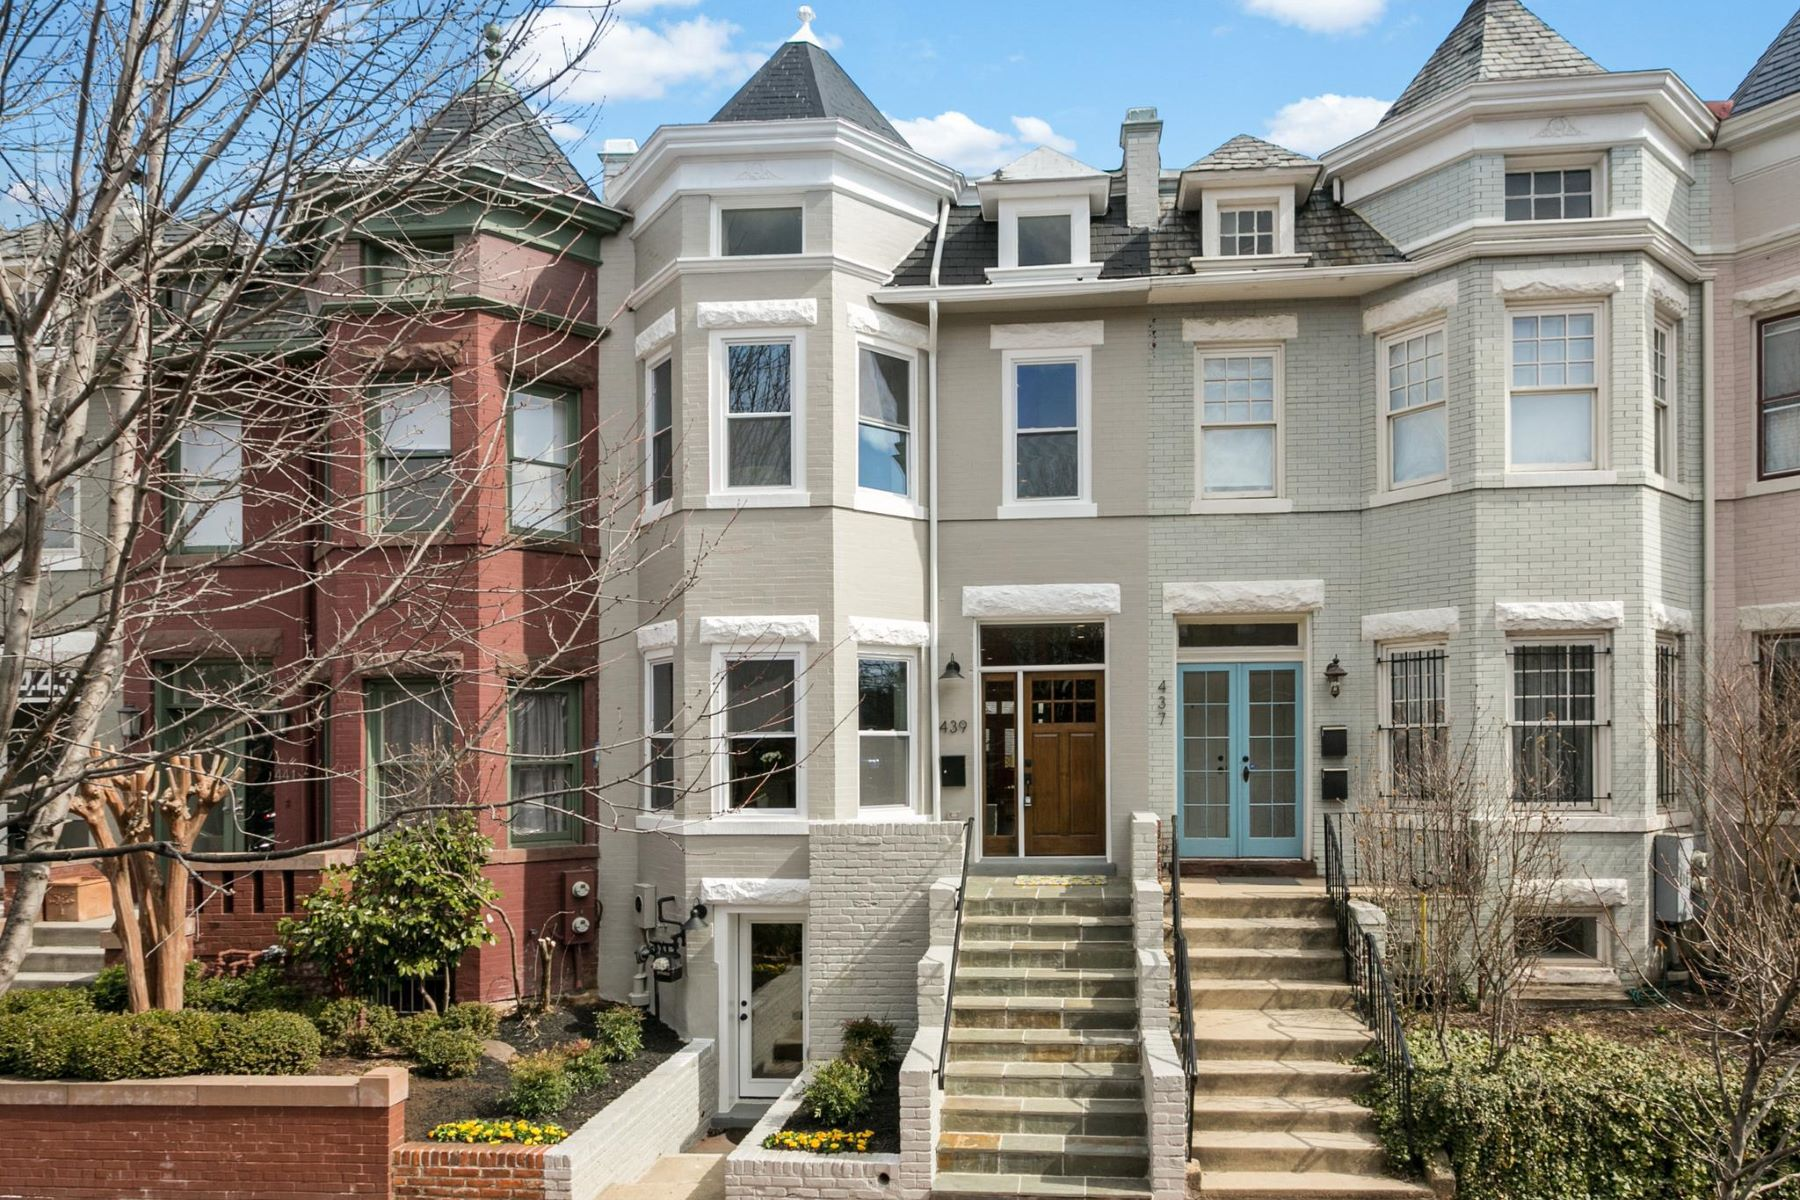 Townhouse for Sale at 439 10th St NE 439 10th St NE Washington, District Of Columbia 20002 United States